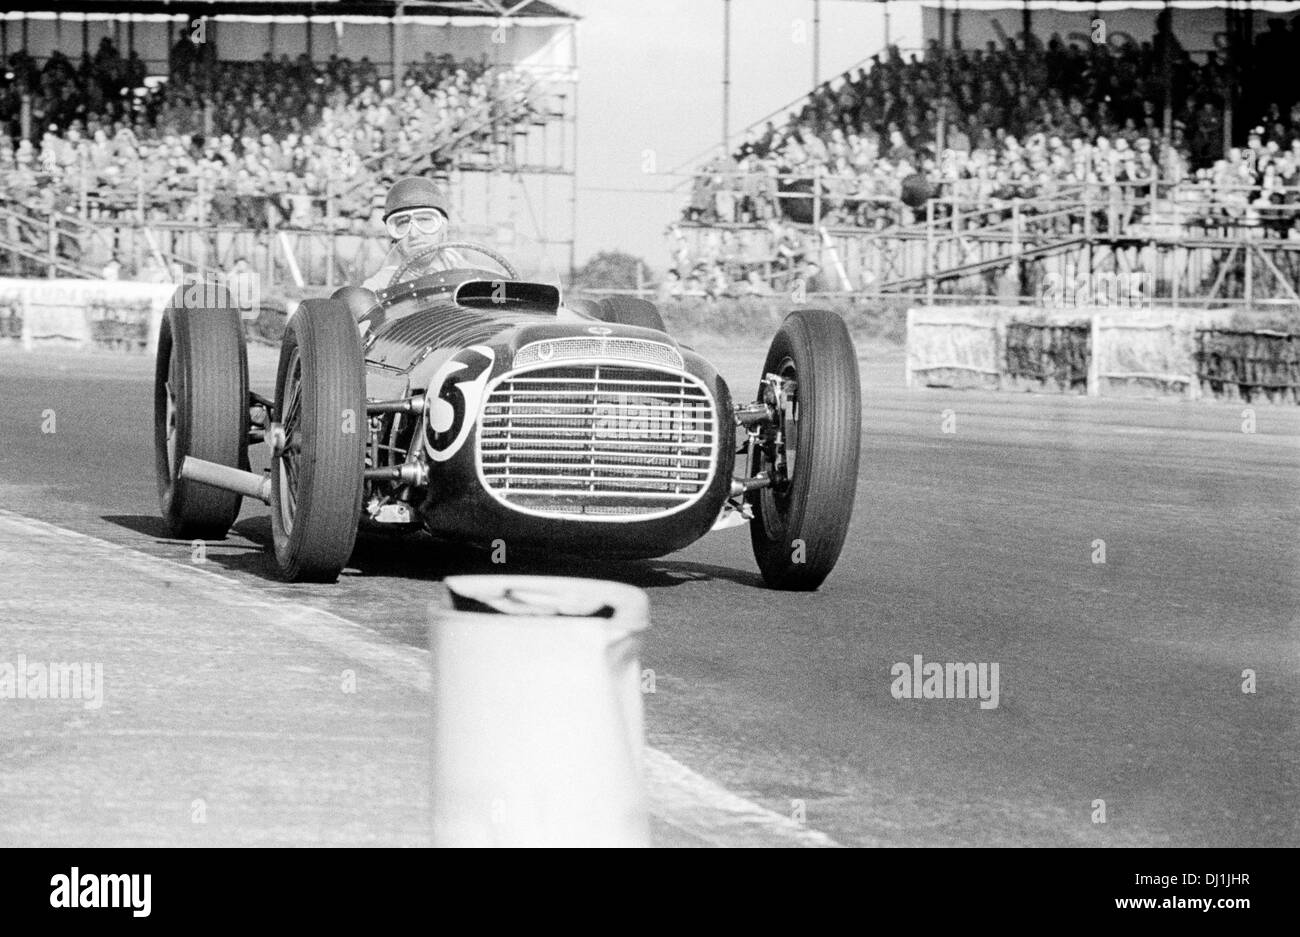 Fangio in the BRM V16 Mark I in the Formule Libre race that day, Silverstone, England 18 July 1953. - Stock Image